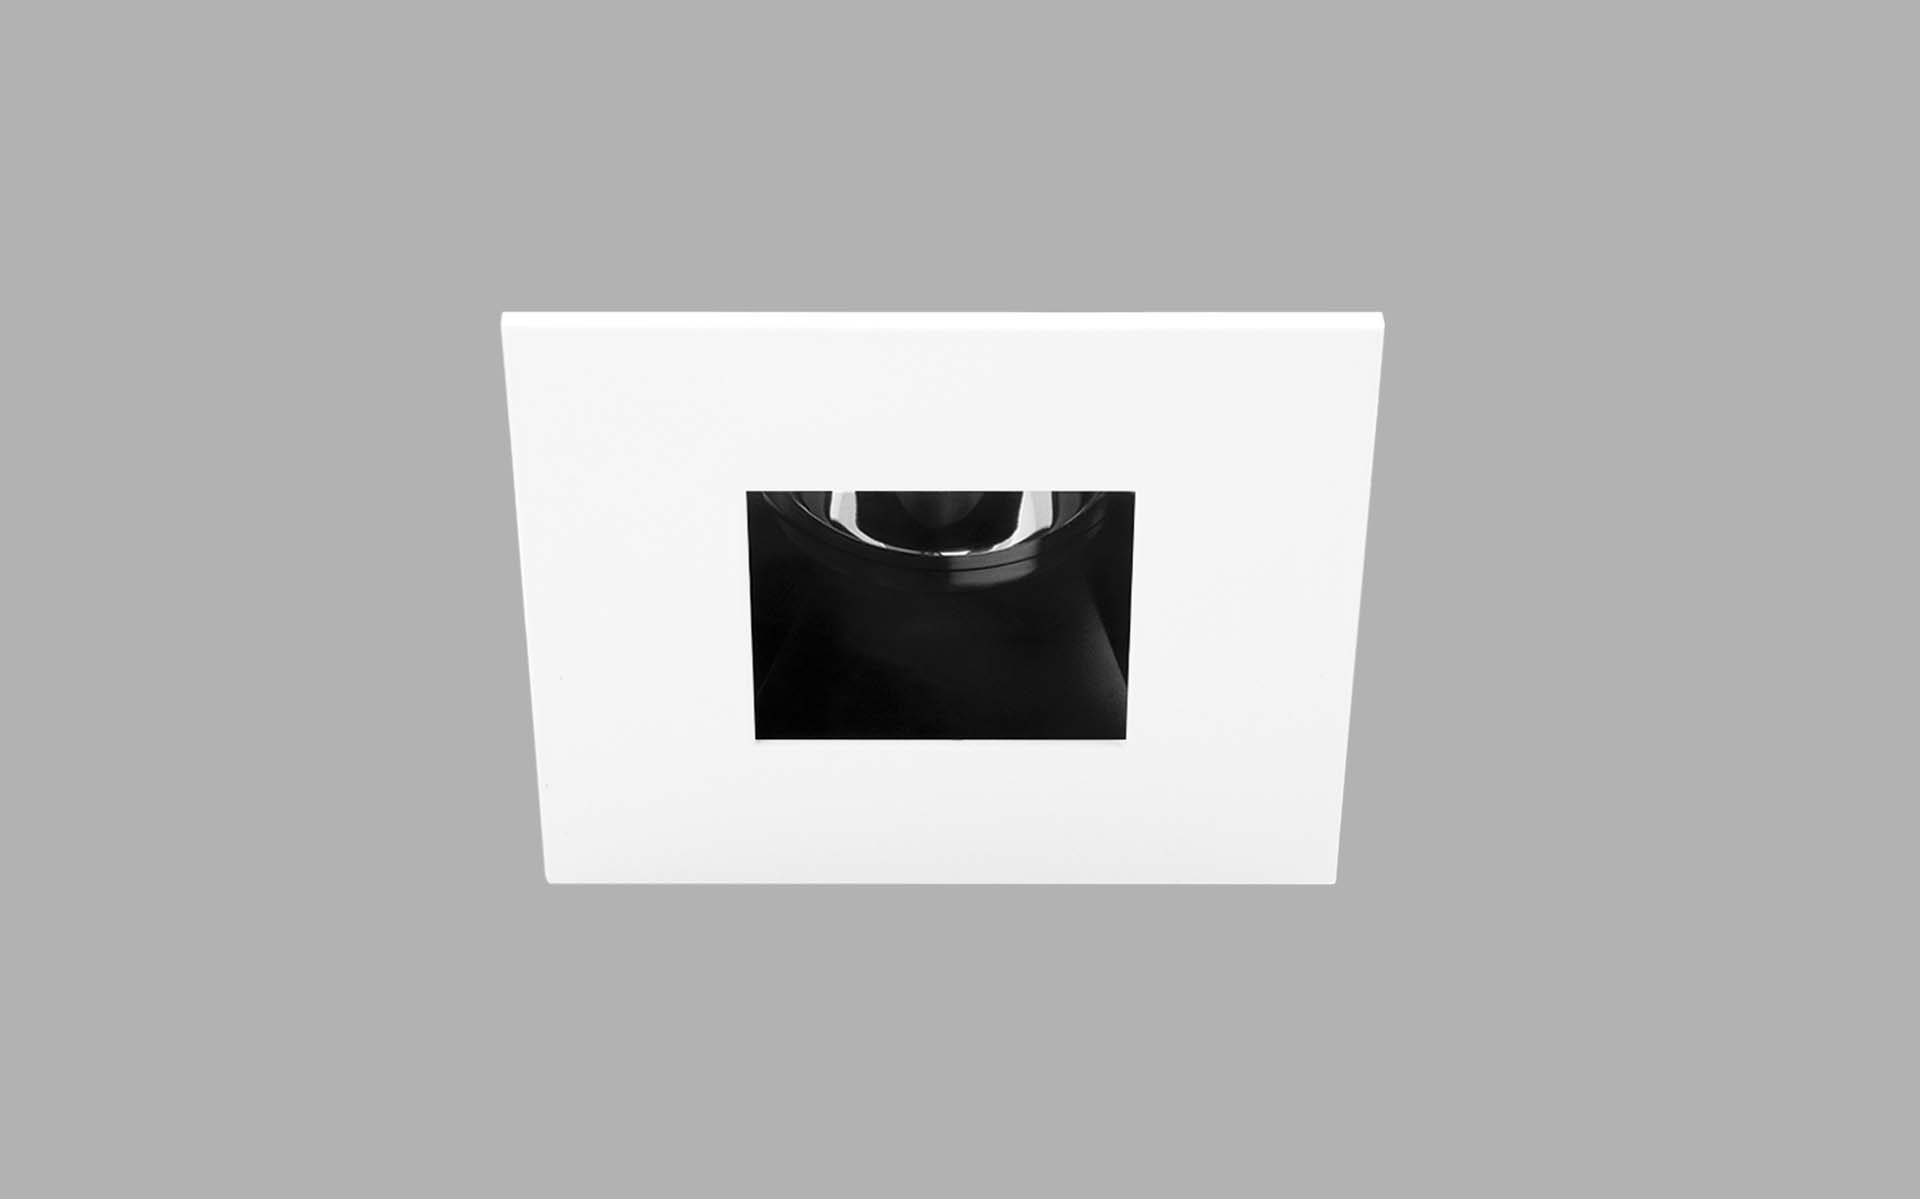 alphaled 90 series pin hole square